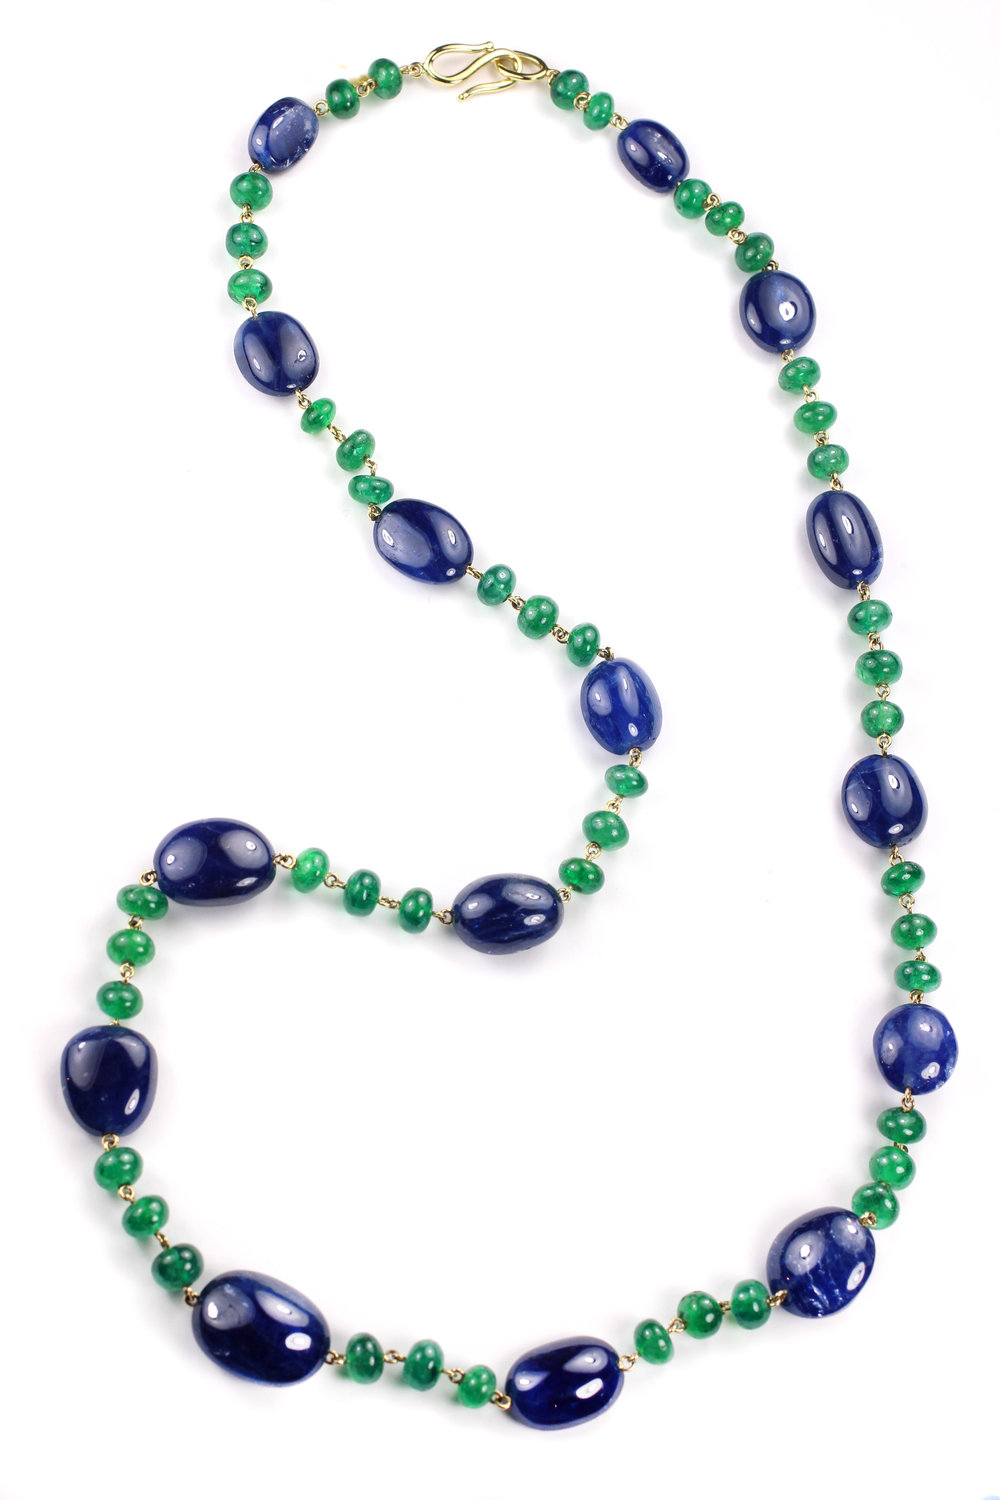 18kt Gold, Sapphire and Emerald Bead Necklace - In Stock